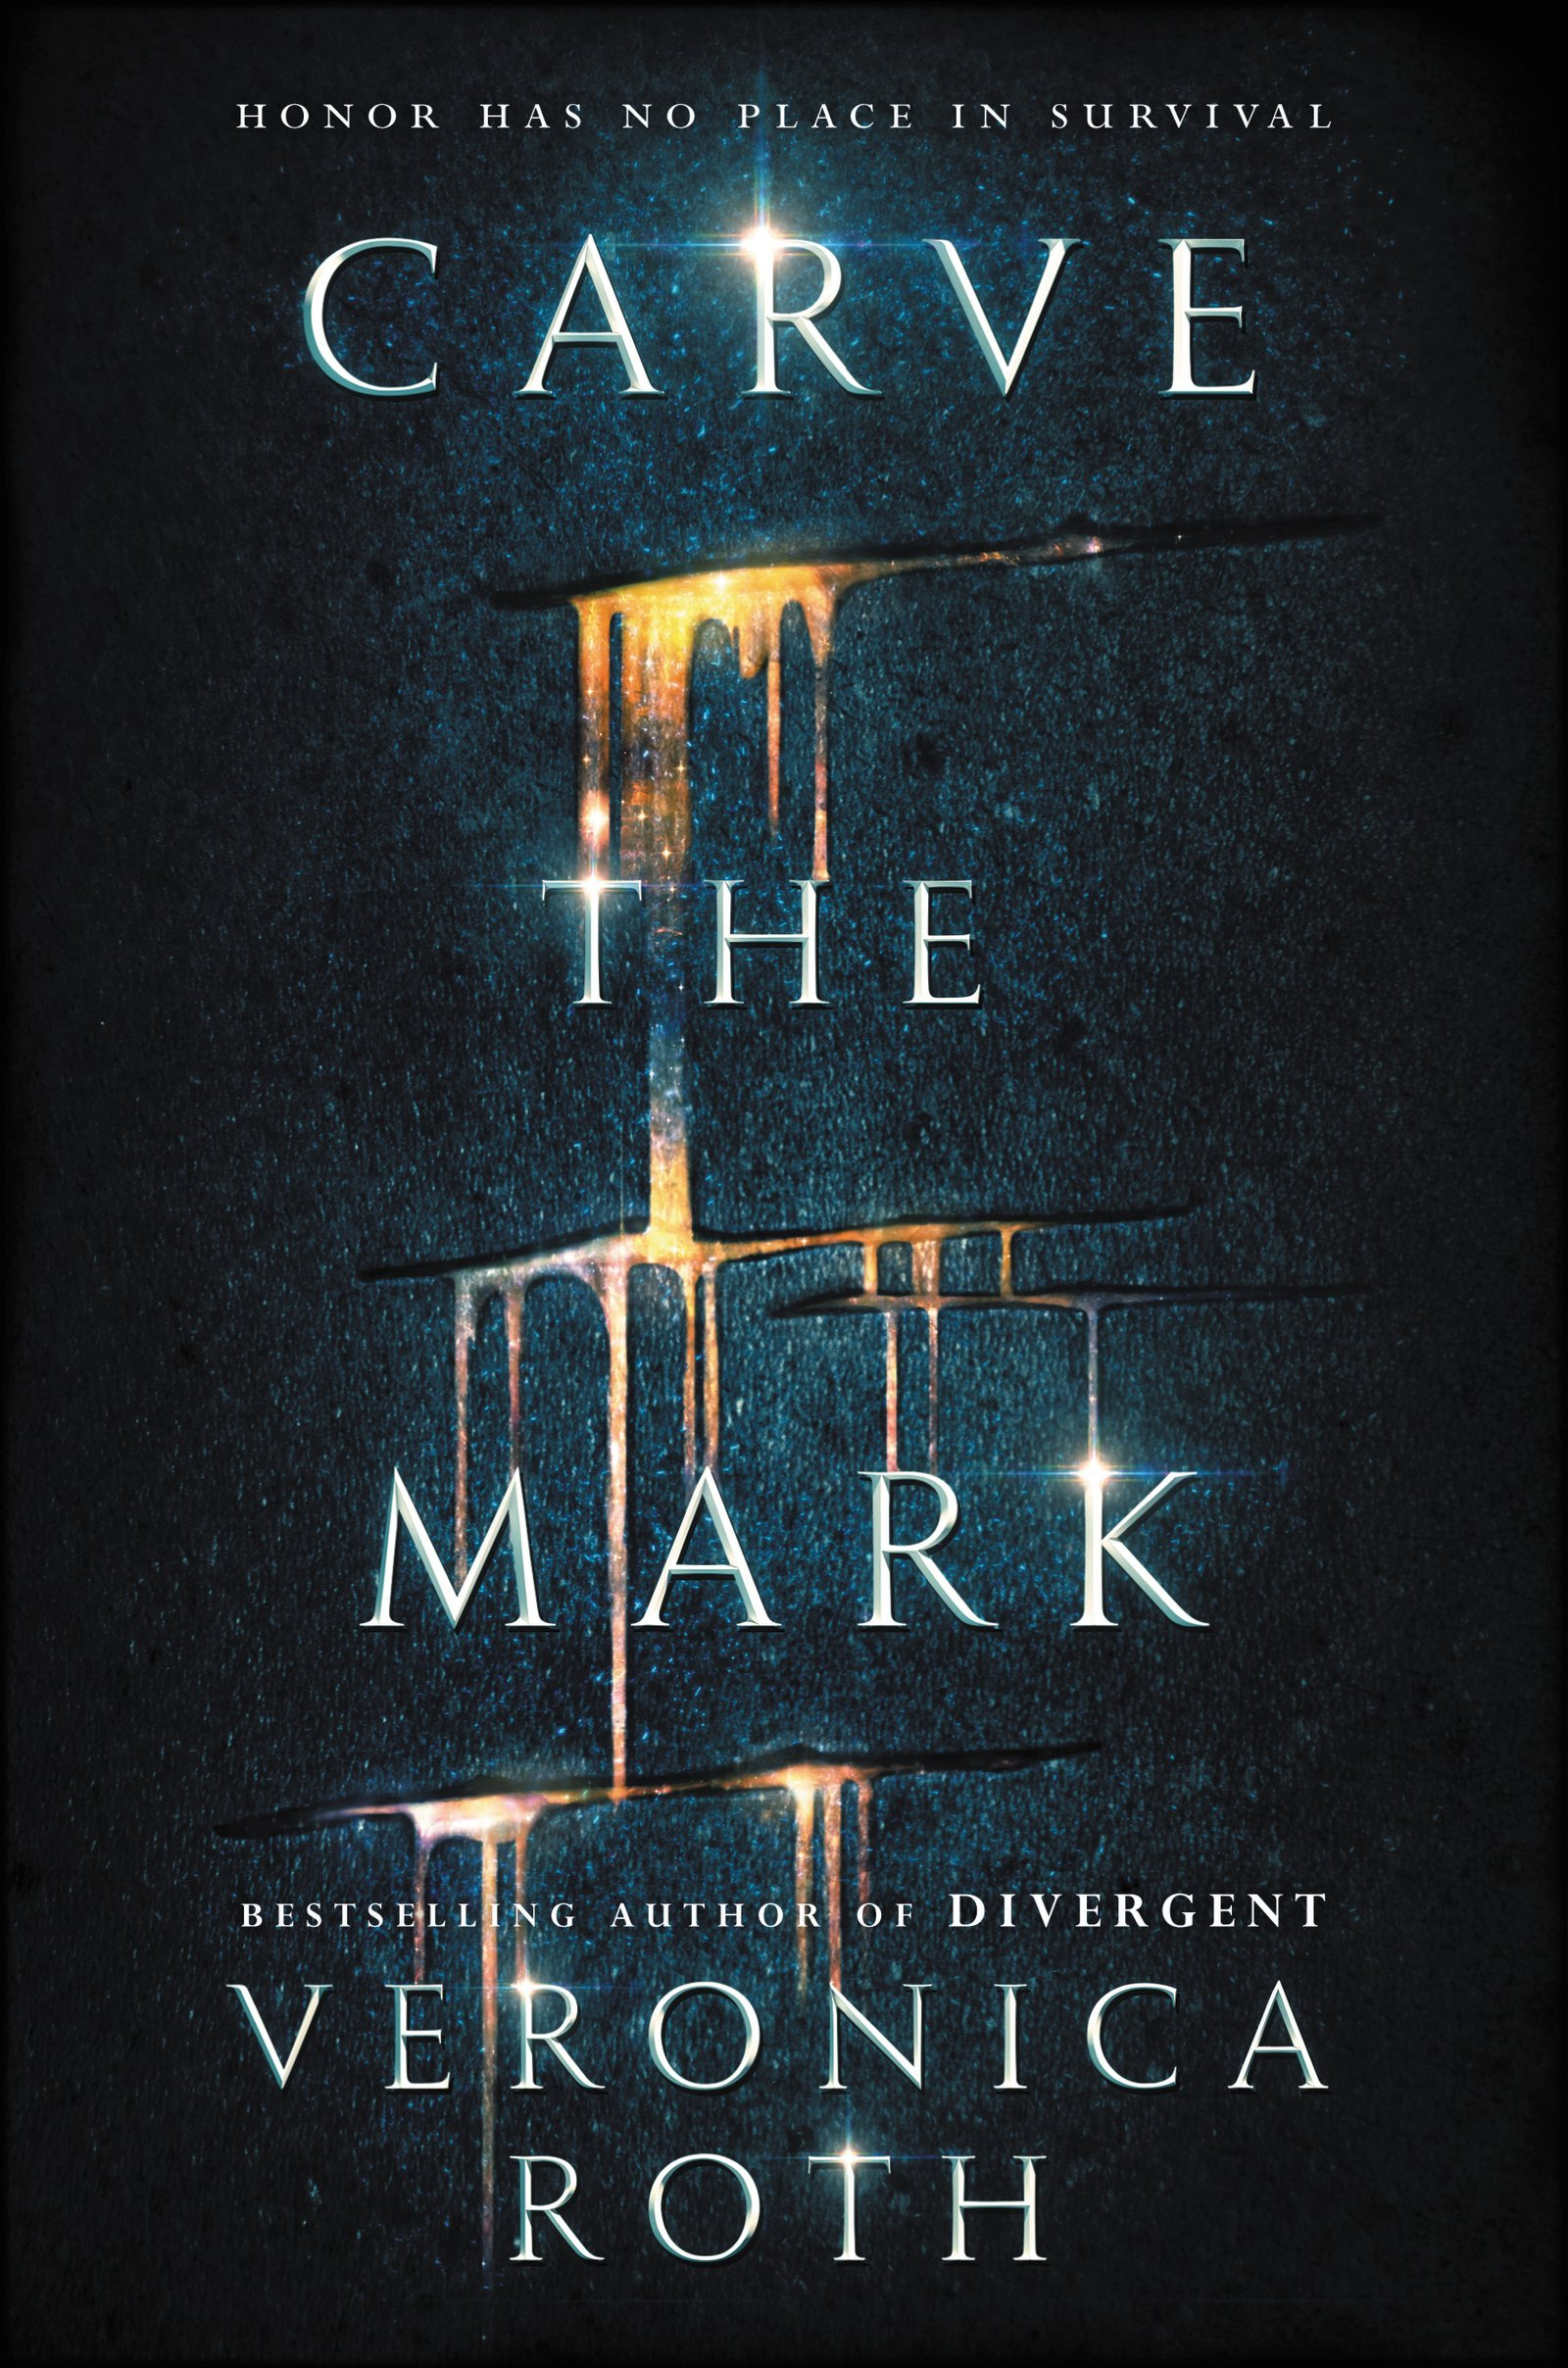 Carve The Mark 9780062348630